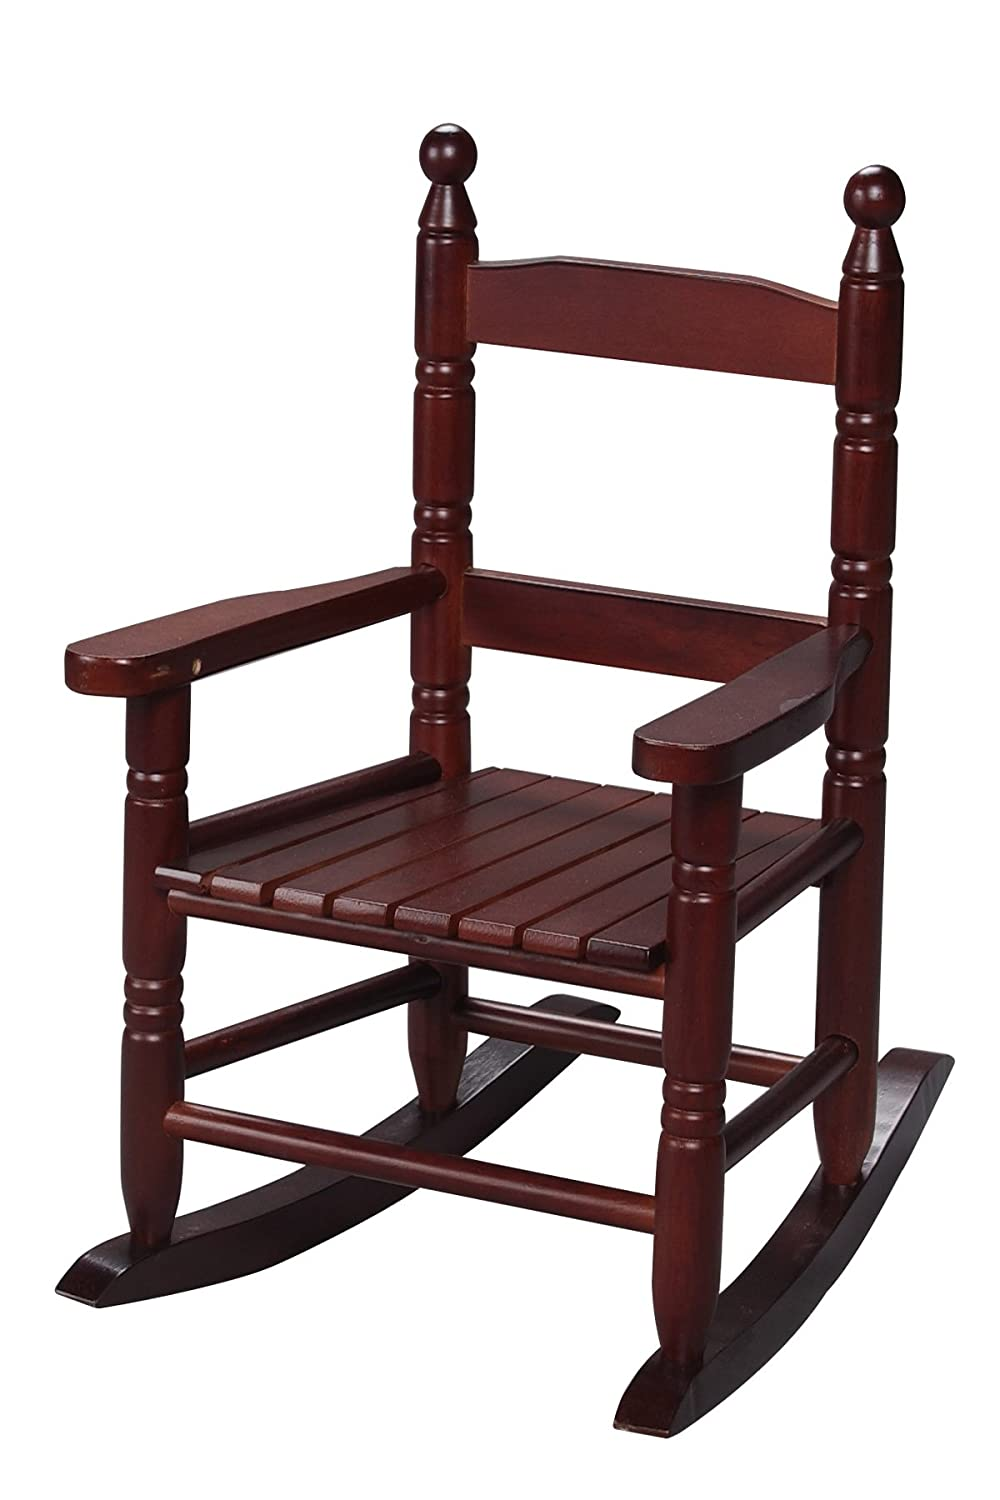 Amazon.com: Gift Mark Childu0027s Double Slat Back Rocking Chair, Espresso:  Kitchen U0026 Dining